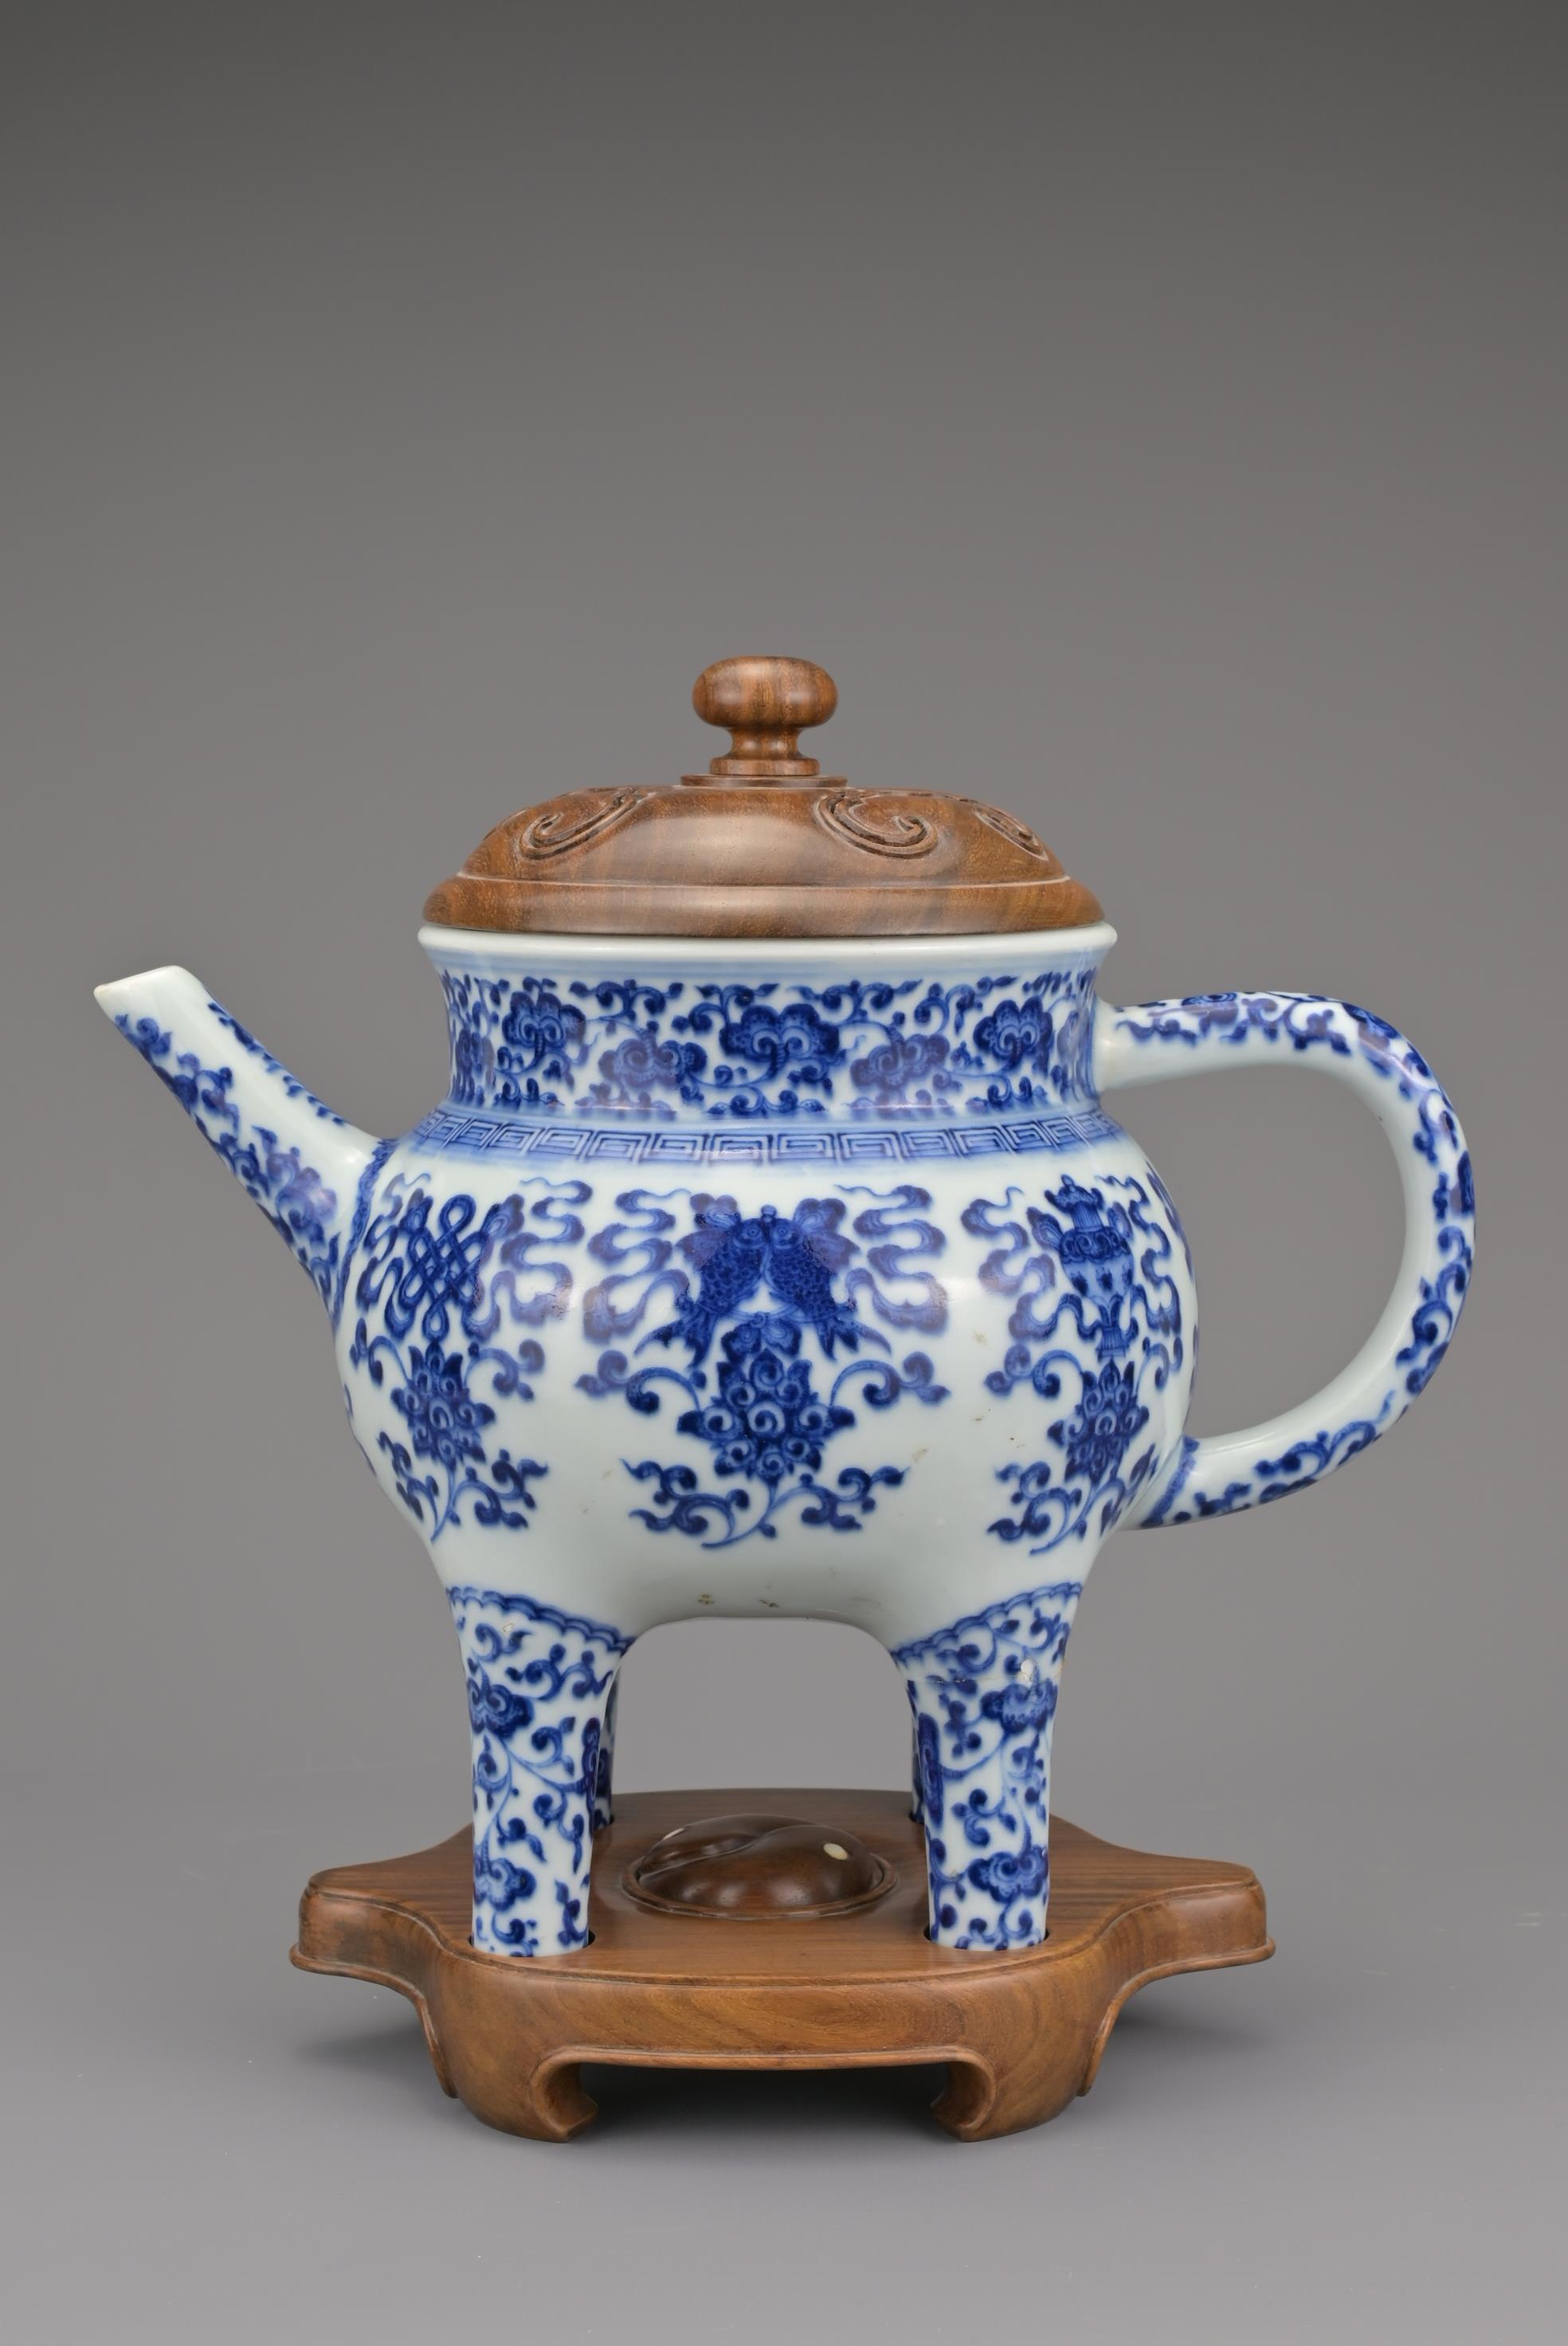 CHINESE BLUE AND WHITE PORCELAIN 'BAJIXIANG' EWER, - Image 2 of 16